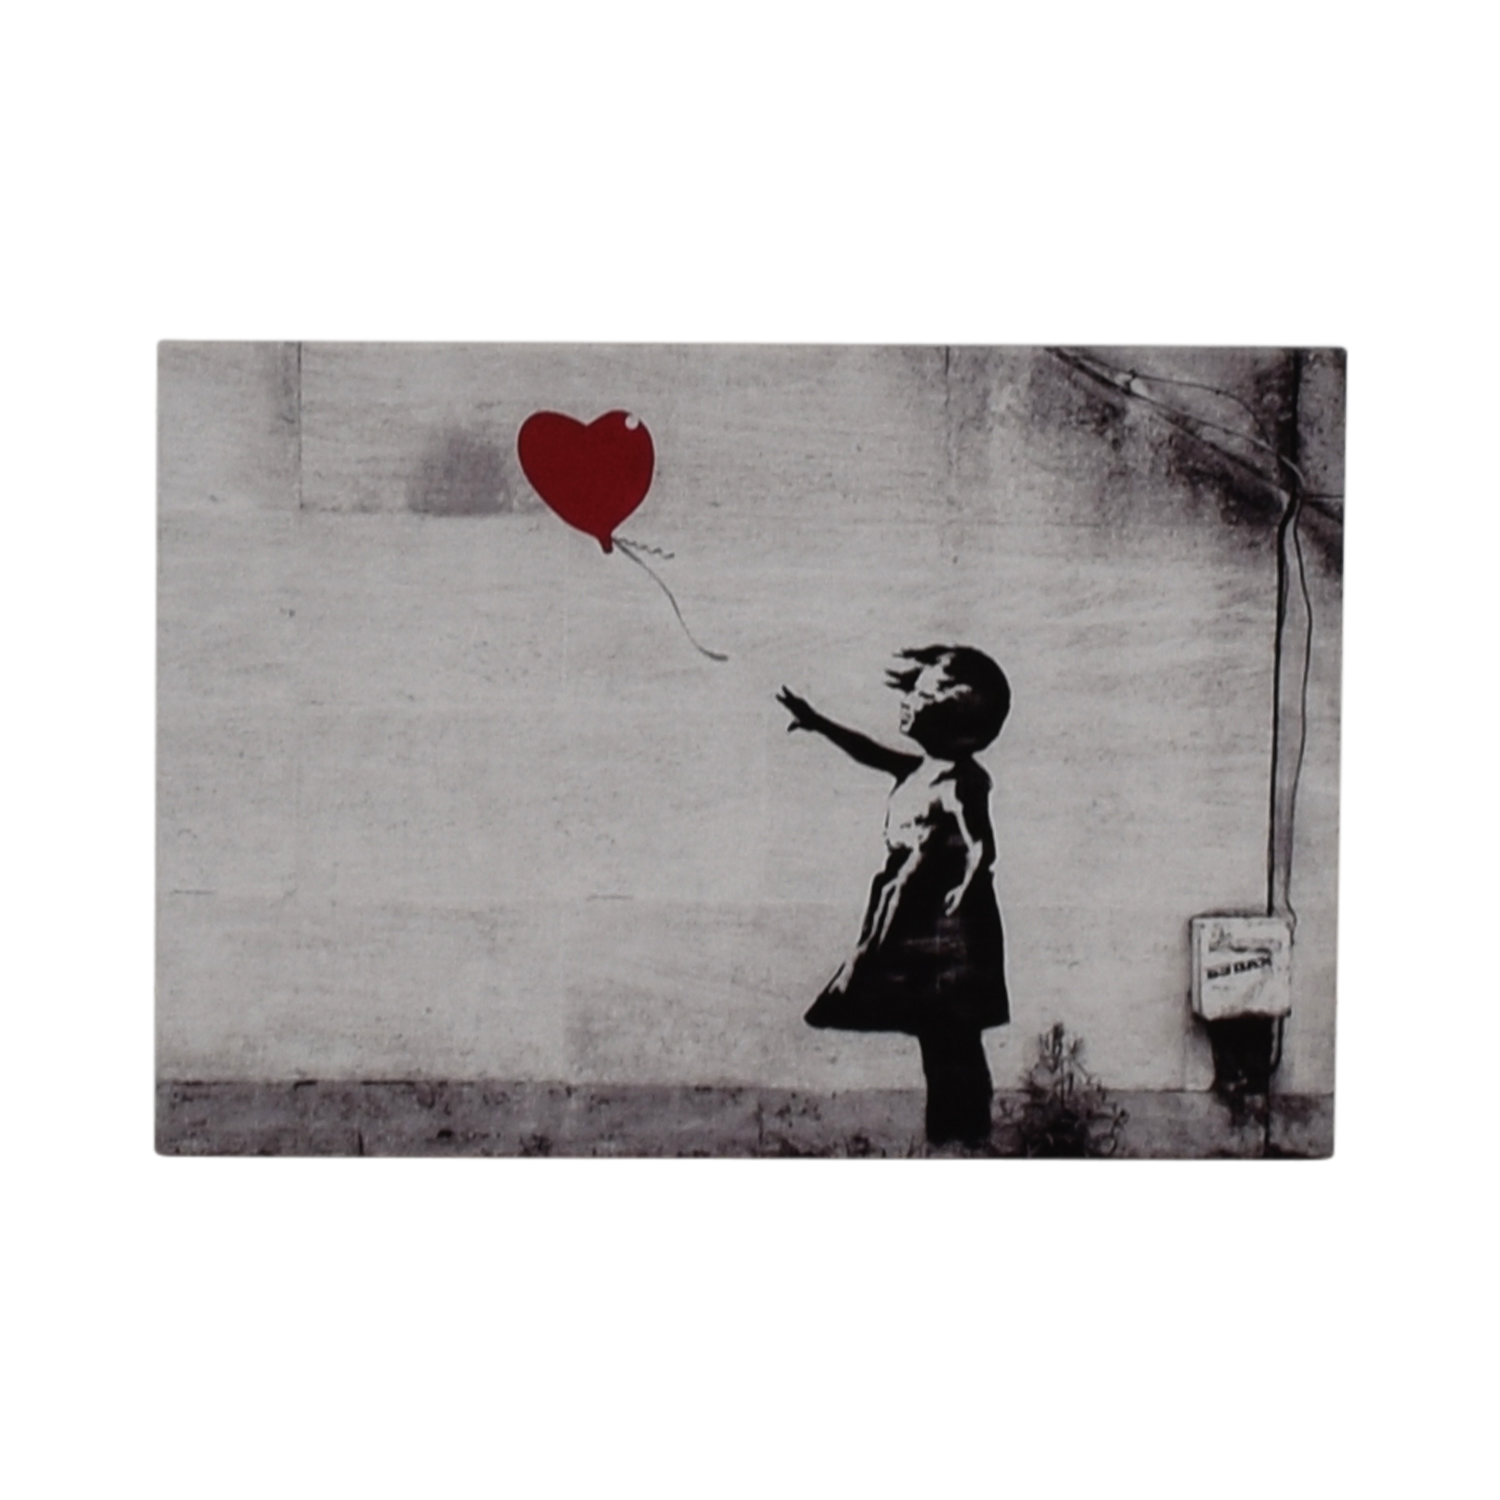 Banksy Banksy Girl with Red Balloon Wall Art coupon